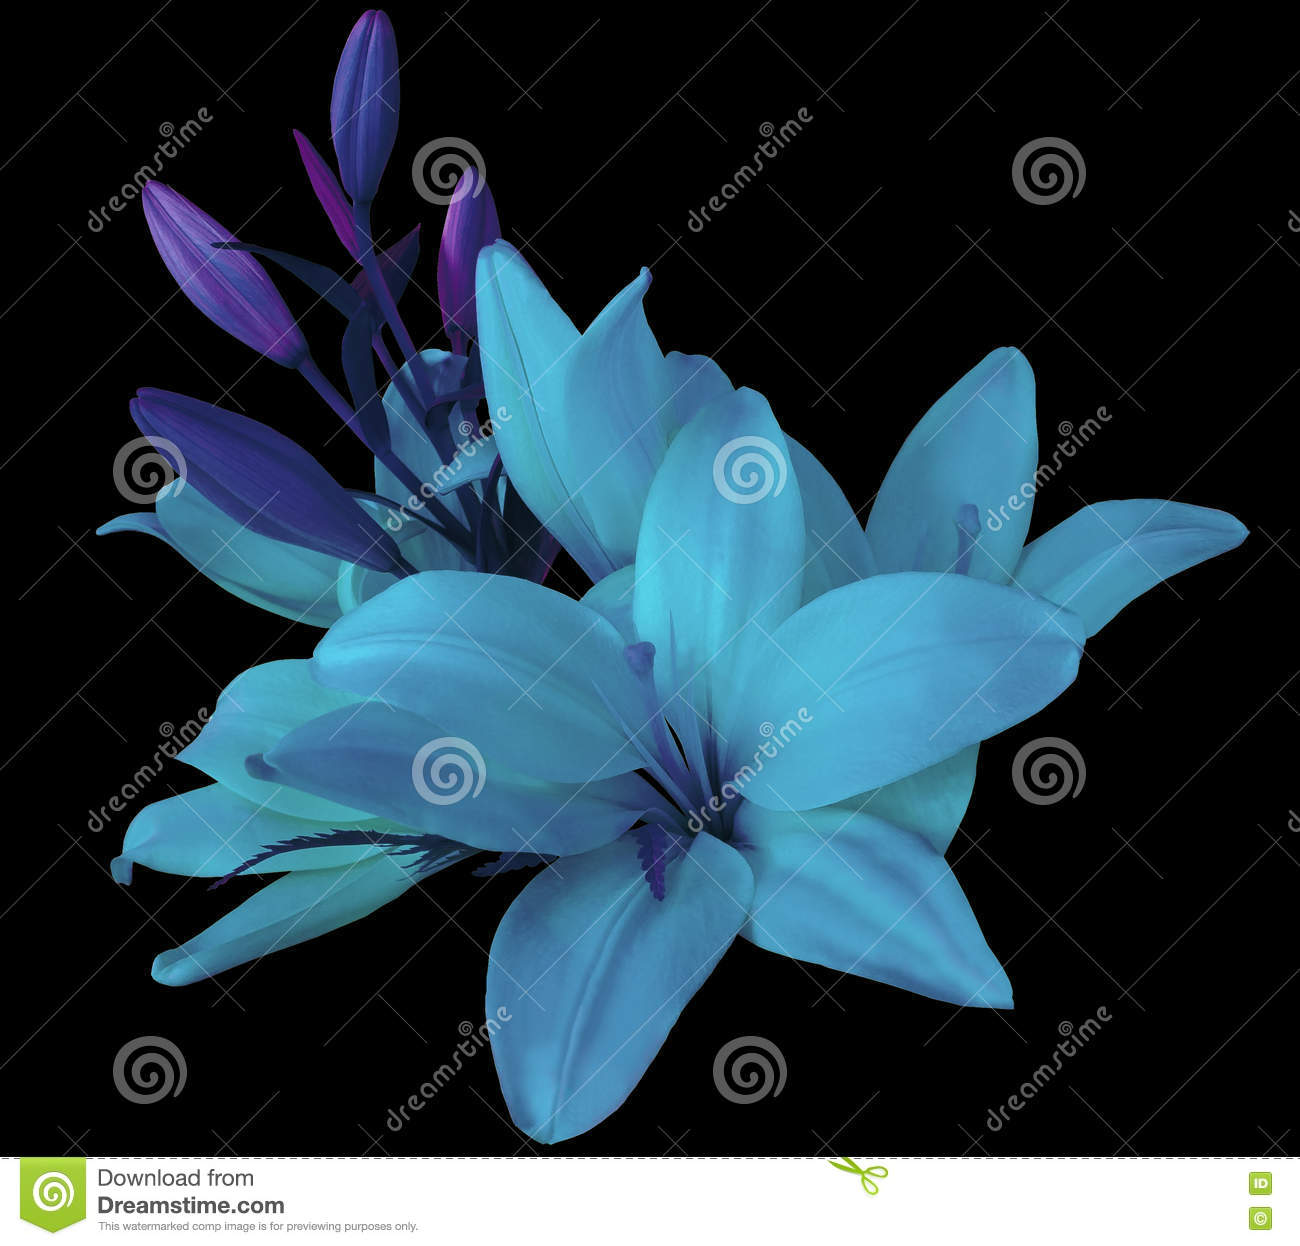 D background images - Lilies Blue Flowers On A Black Background Isolated With Clipping Path Beautiful Bouquet Of Lilies With Violet Leaves For D